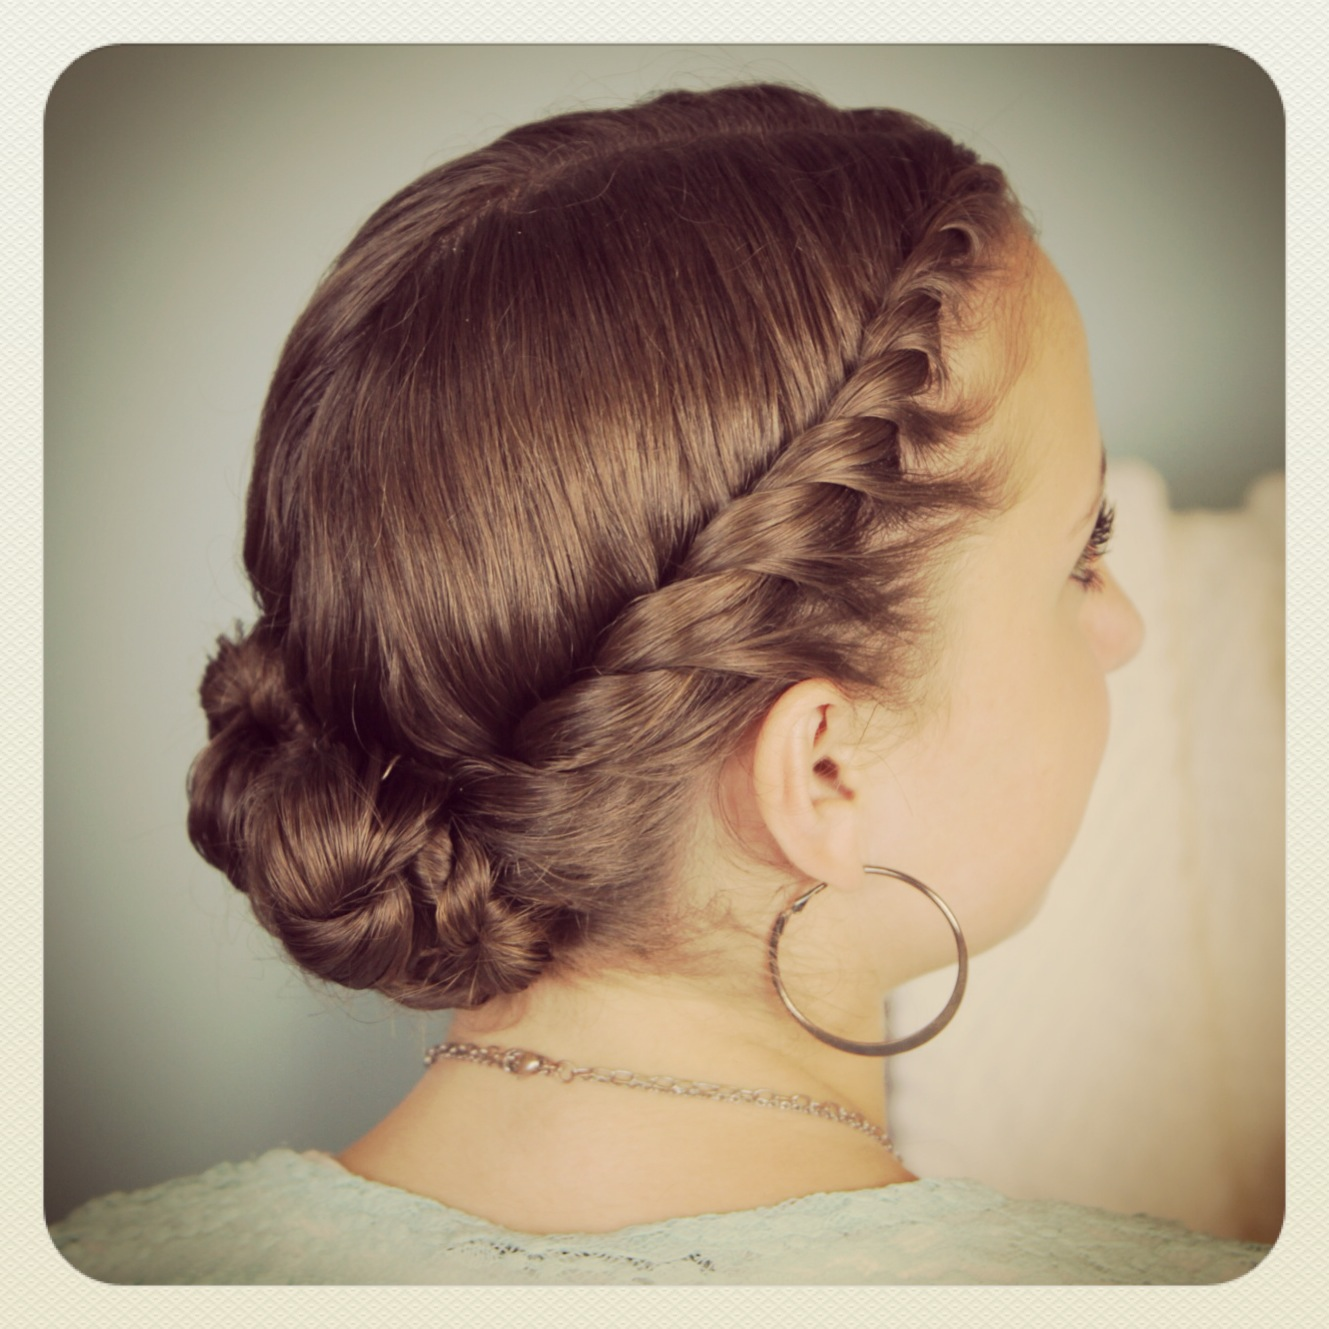 Hairstyles For Formal Dances Hairstyles To Go With Your Homecoming Dress Persuncc Official Blog